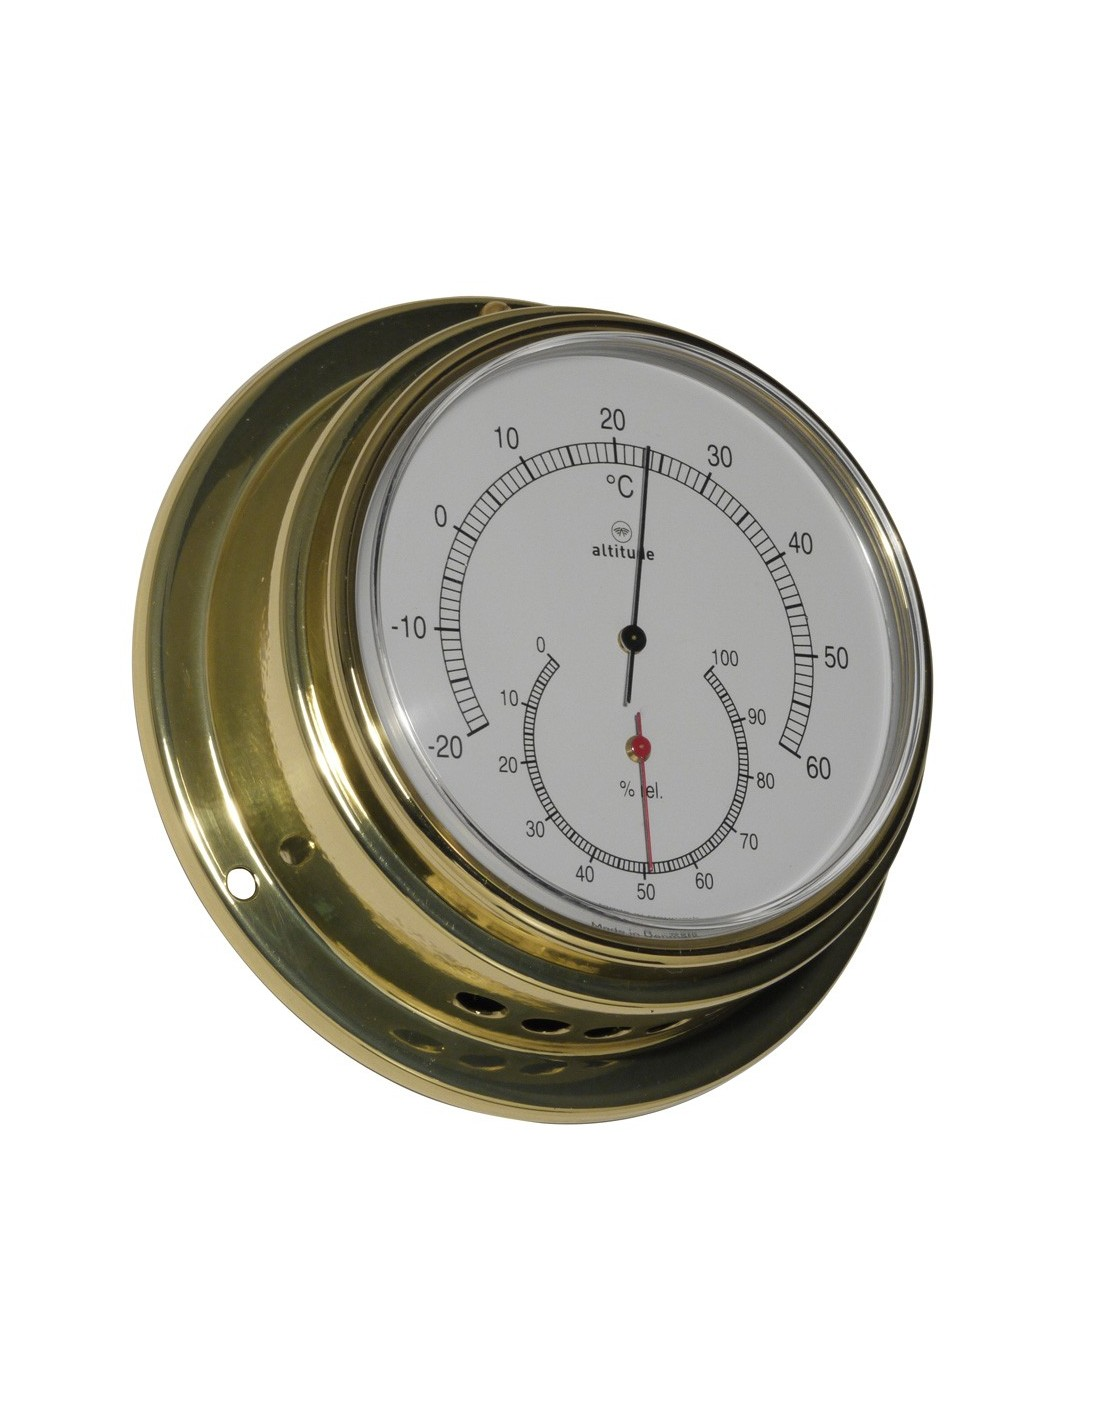 Thermometer / Hygrometer - 125 mm - Altitude - Scheepsinstrumenten - 852 TH